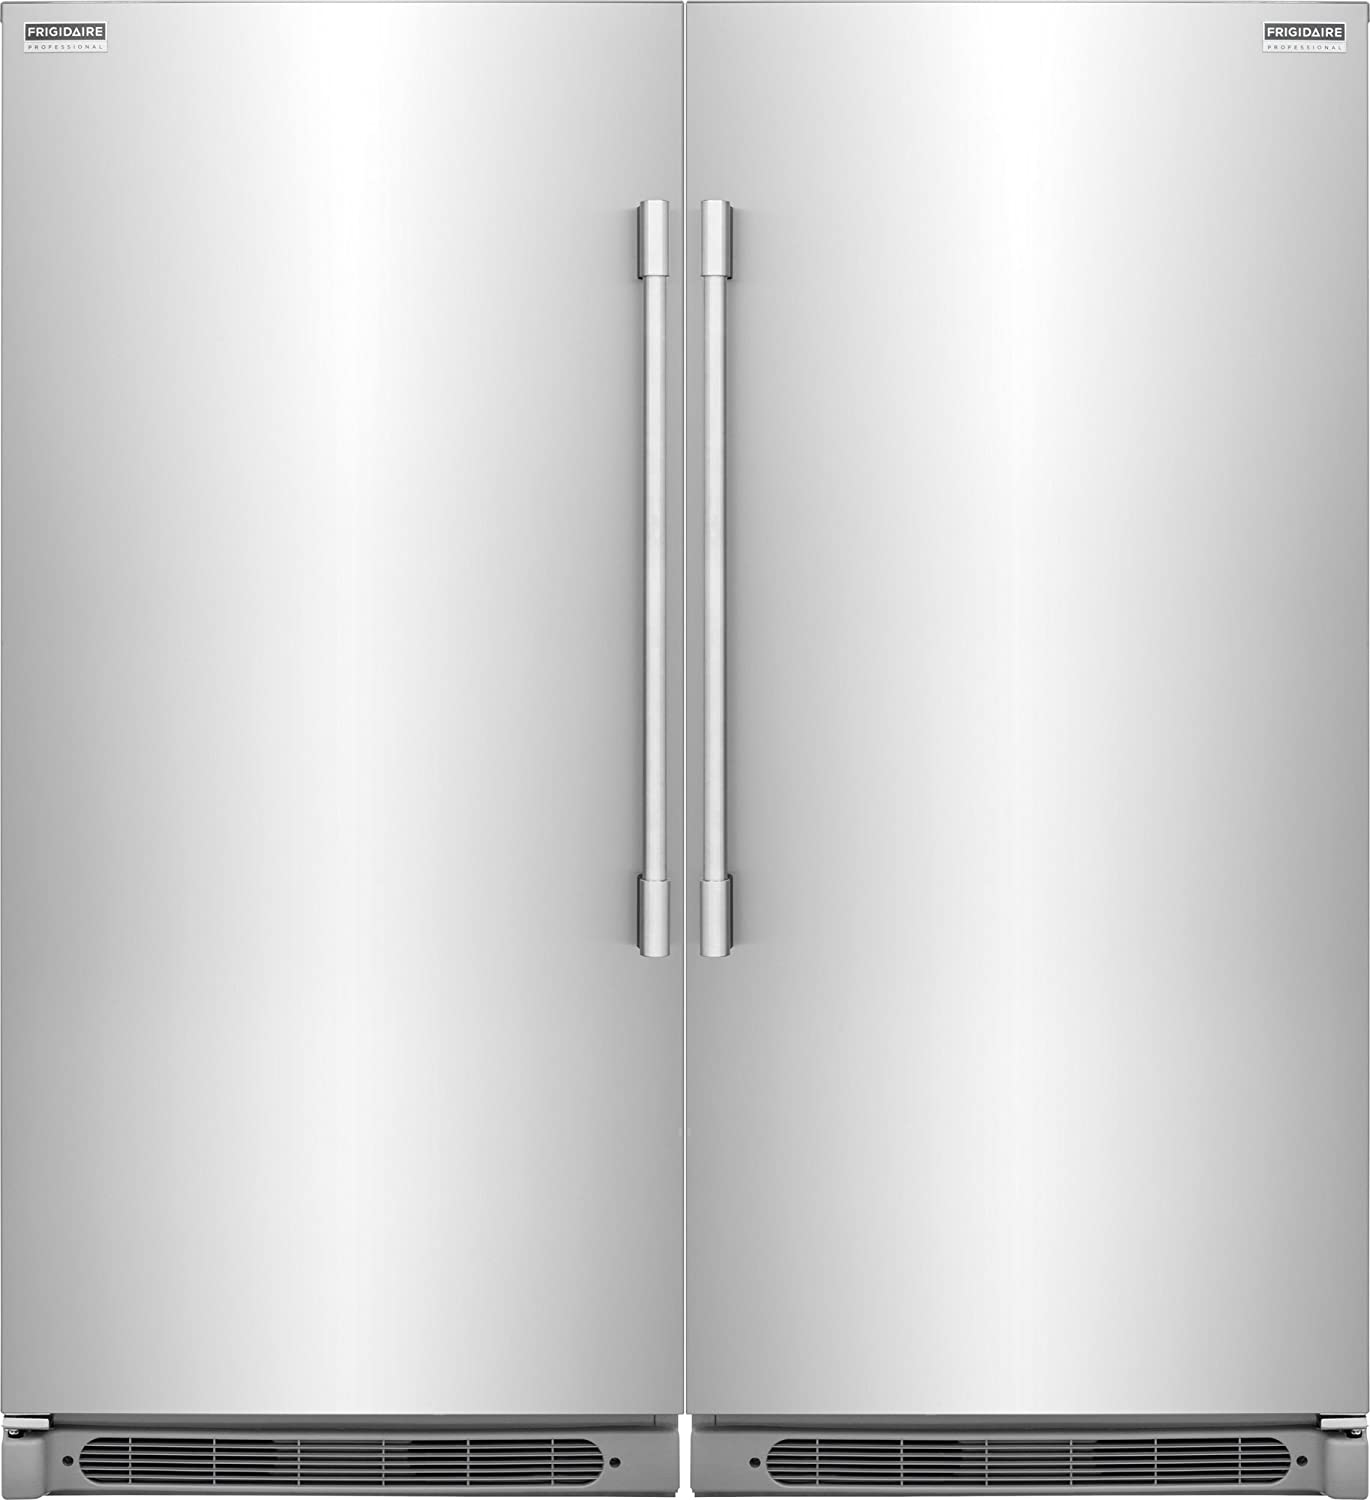 amazoncom frigidaire series builtin all all freezer combo with easy care stainless appliances